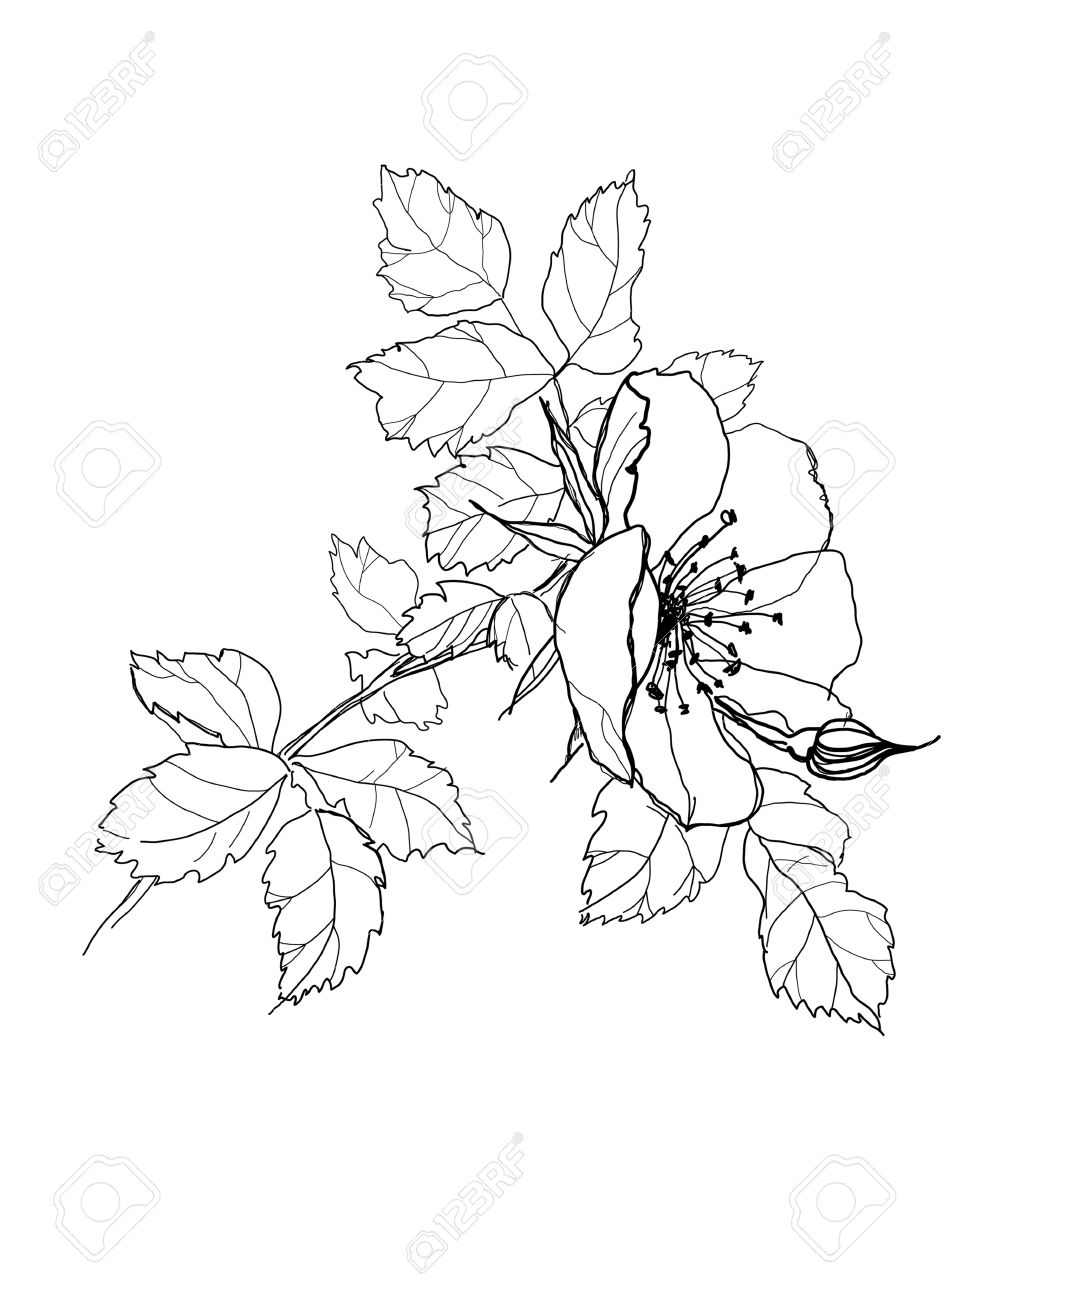 1079x1300 Hoontoidly Rose Drawings In Pencil Outline Images